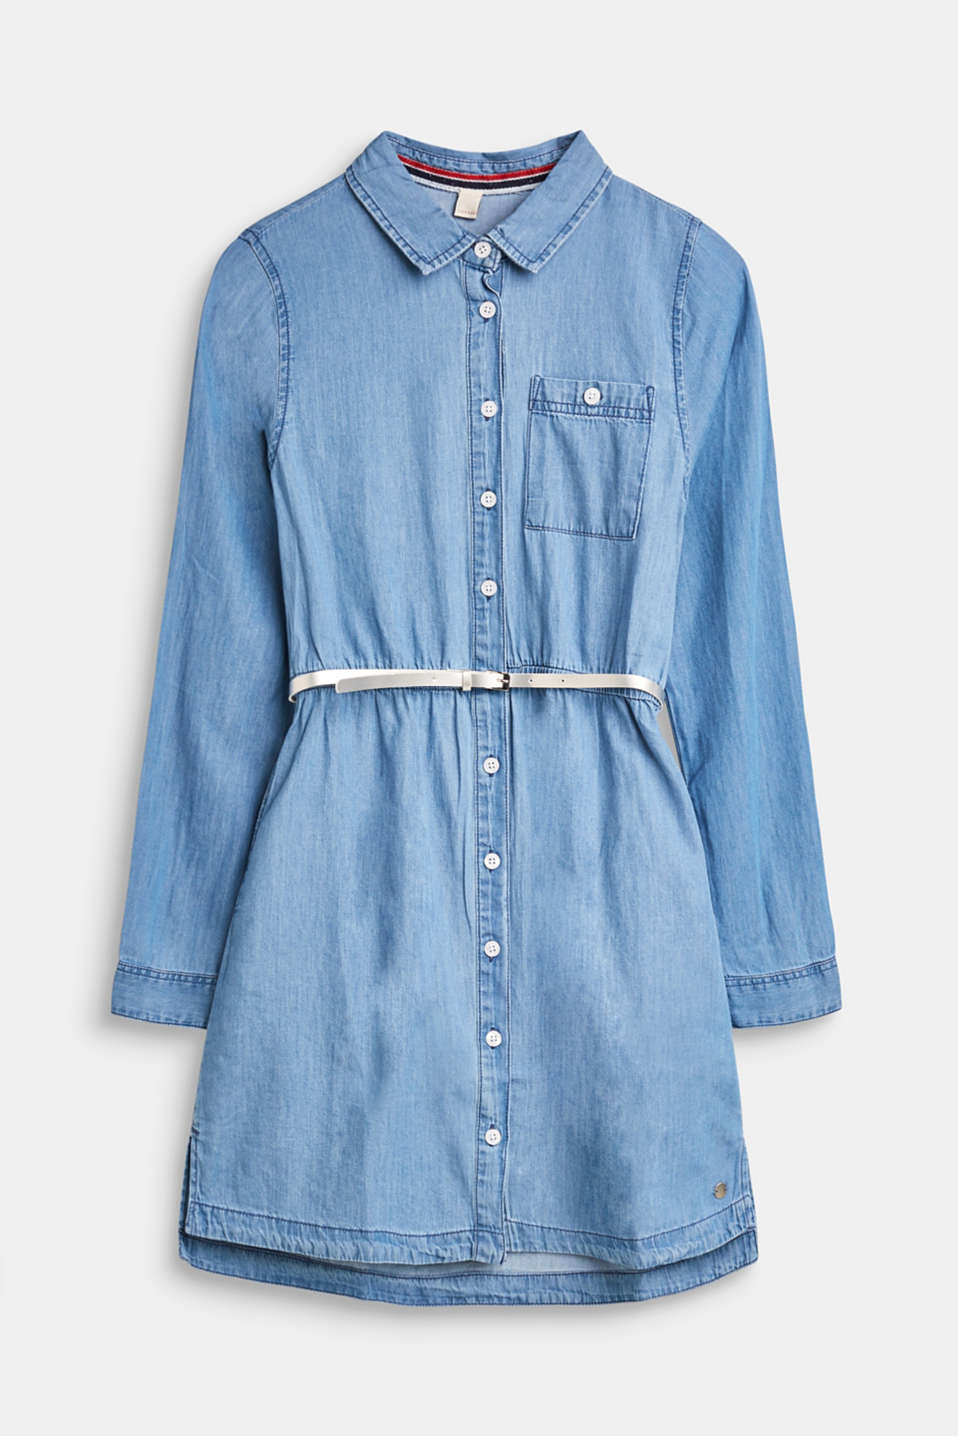 Esprit - Denim dress with belt, 100% cotton